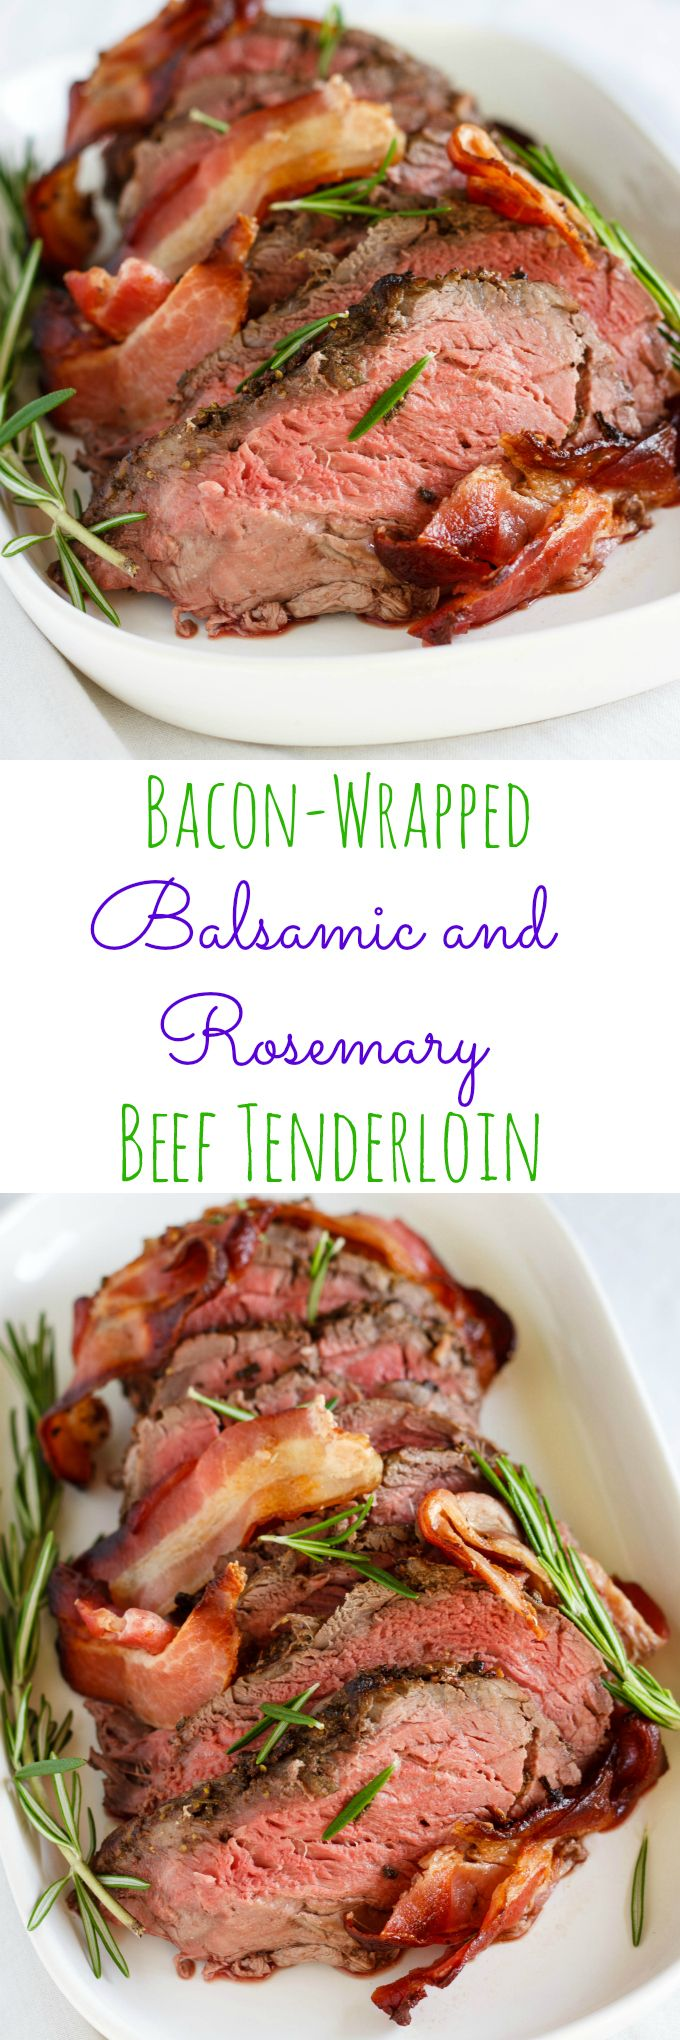 Bacon-Wrapped Balsamic and Rosemary Beef Tenderloin 5